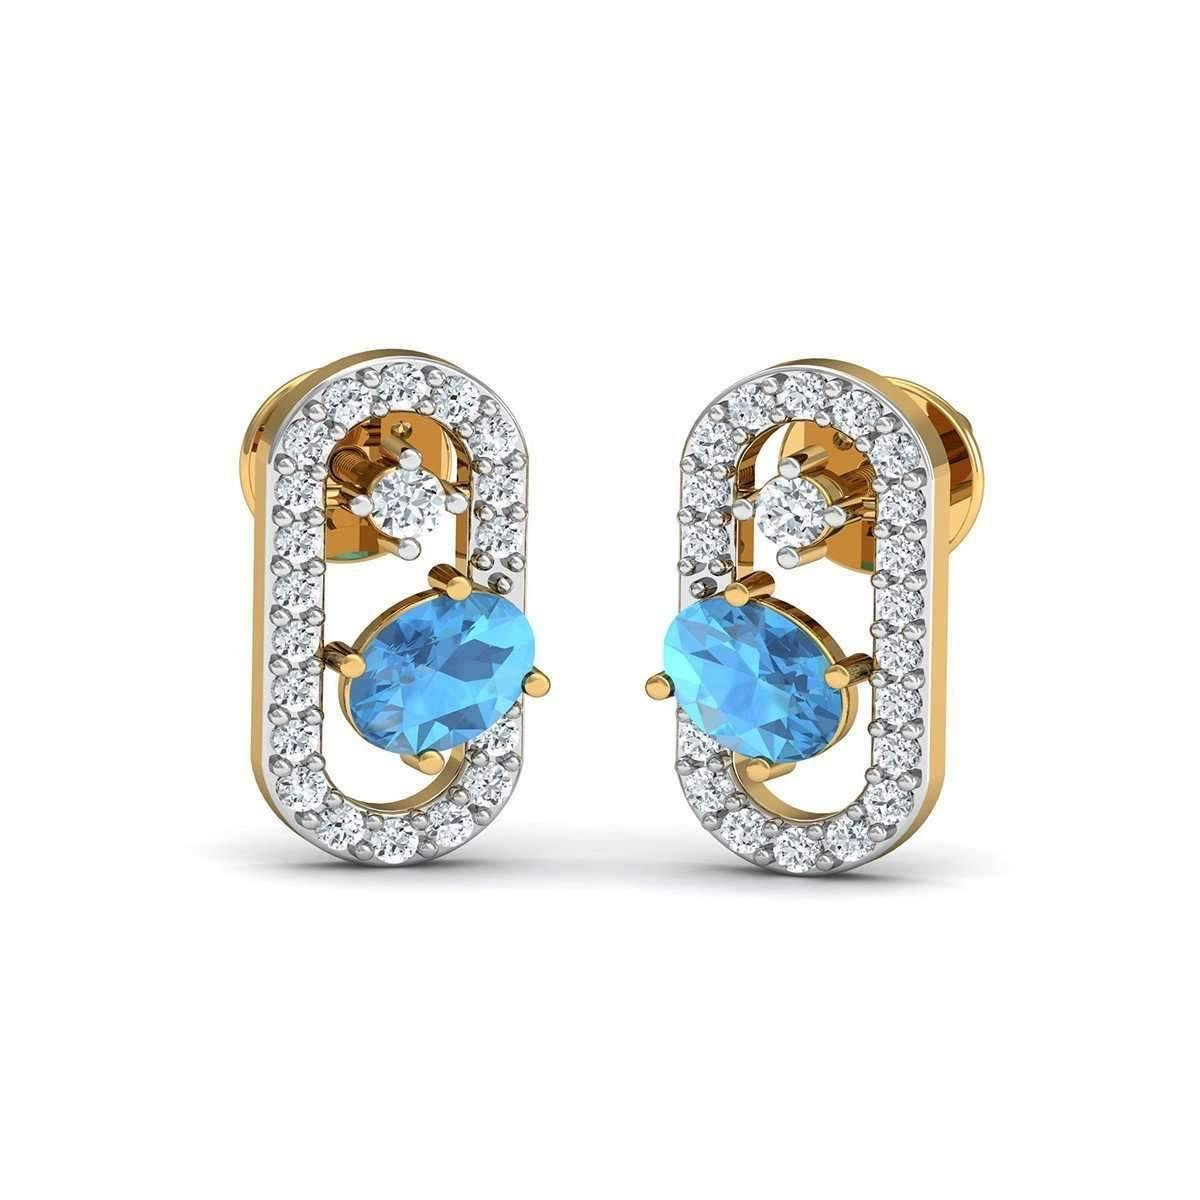 Diamoire Jewels Oval Cut Natural Aquamarine and Diamond Earrings in 14kt Yellow Gold 05K5psSQ0